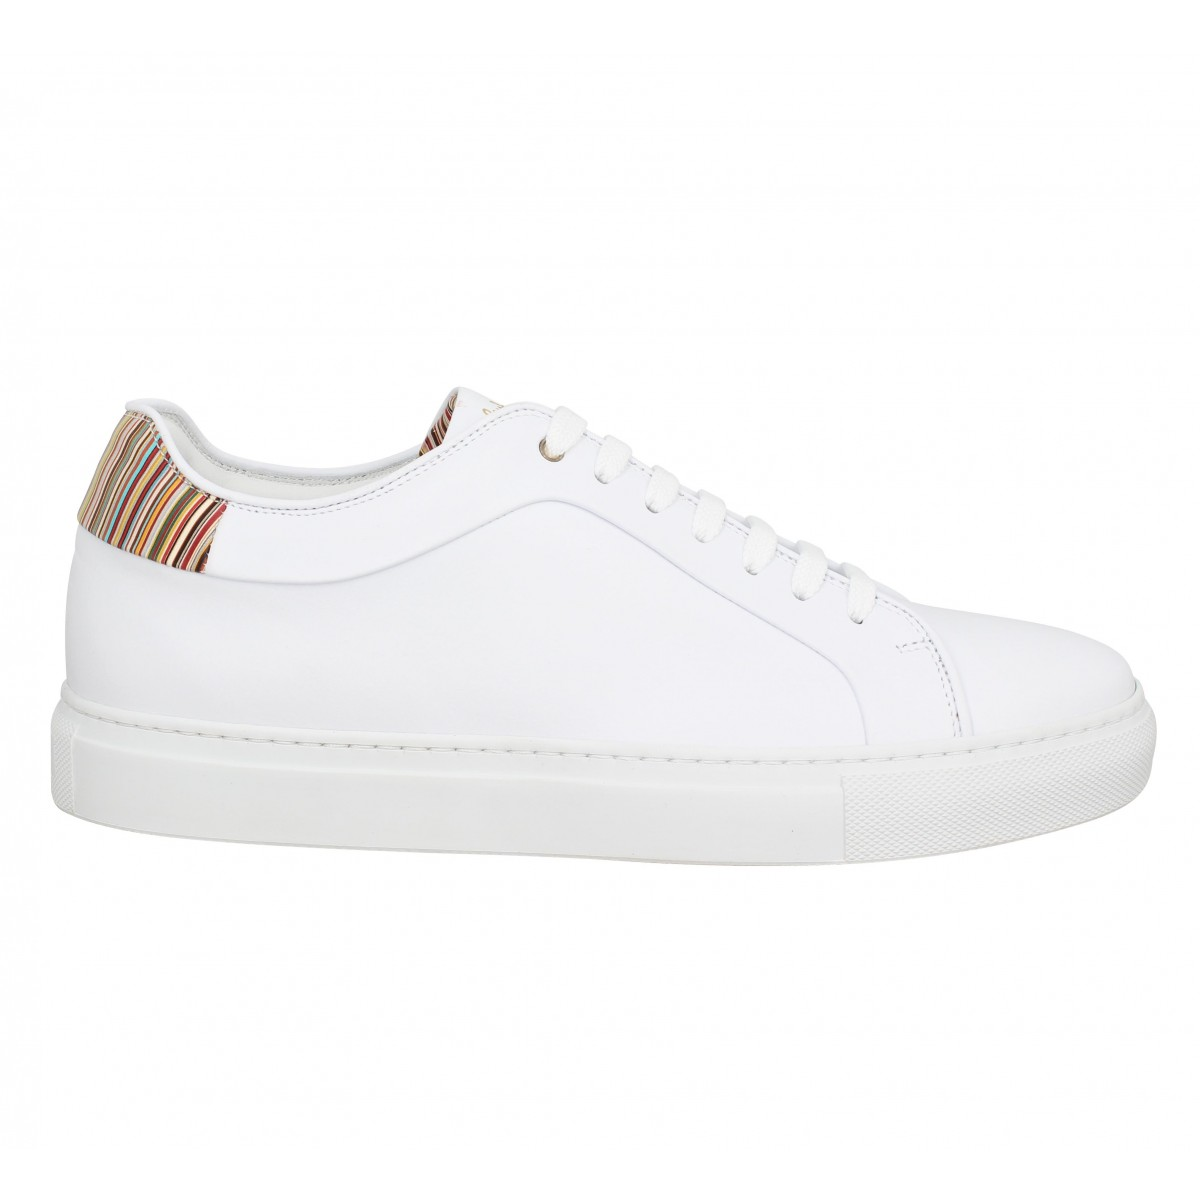 Blanc Chaussures Homme Fanny Smith Cuir Paul Basso InZpq7xw